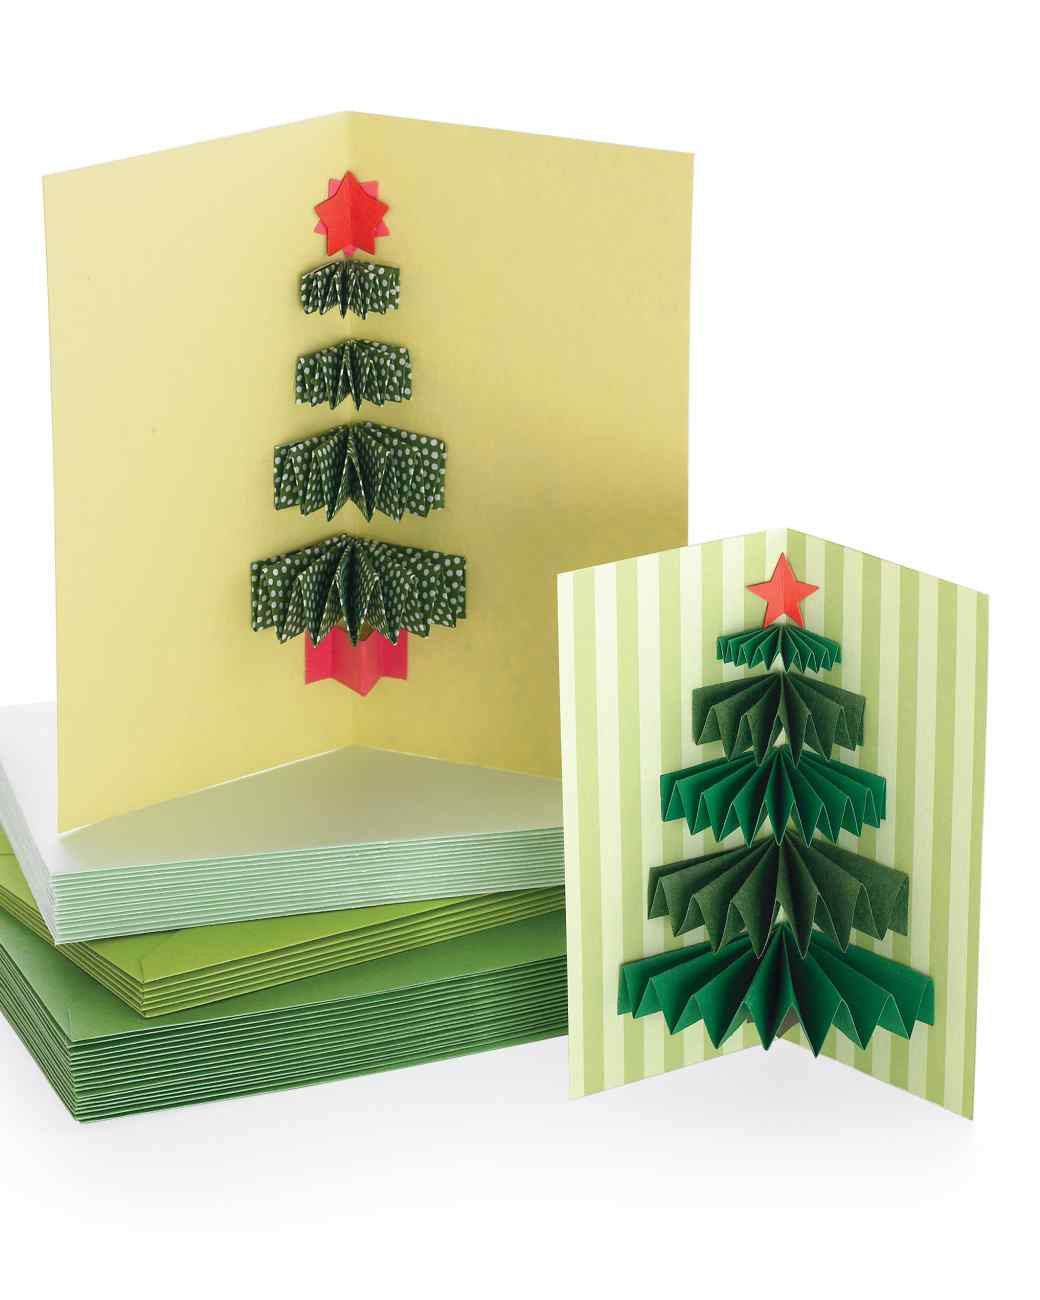 Best ideas about DIY Christmas Cards . Save or Pin 12 Beautiful Diy & Homemade Christmas Card Ideas Now.